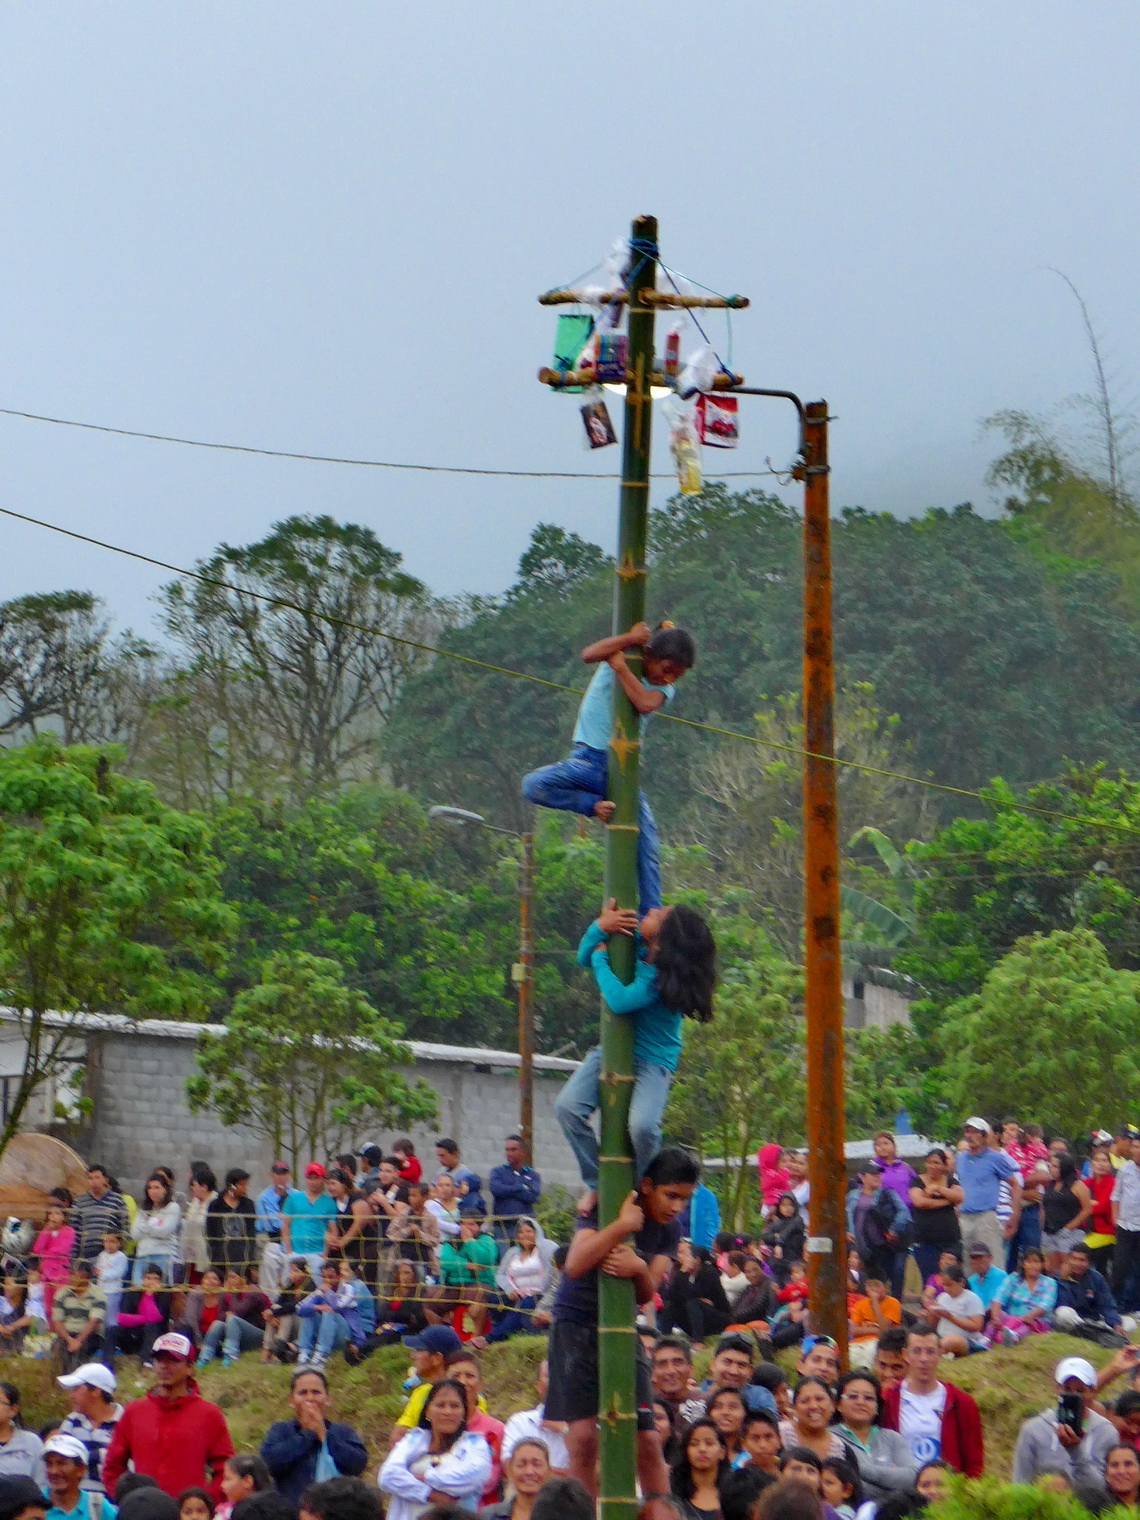 Fiesta in Santa Rosa - Kids trying to catch gifts on top of a slippery bamboo trunk